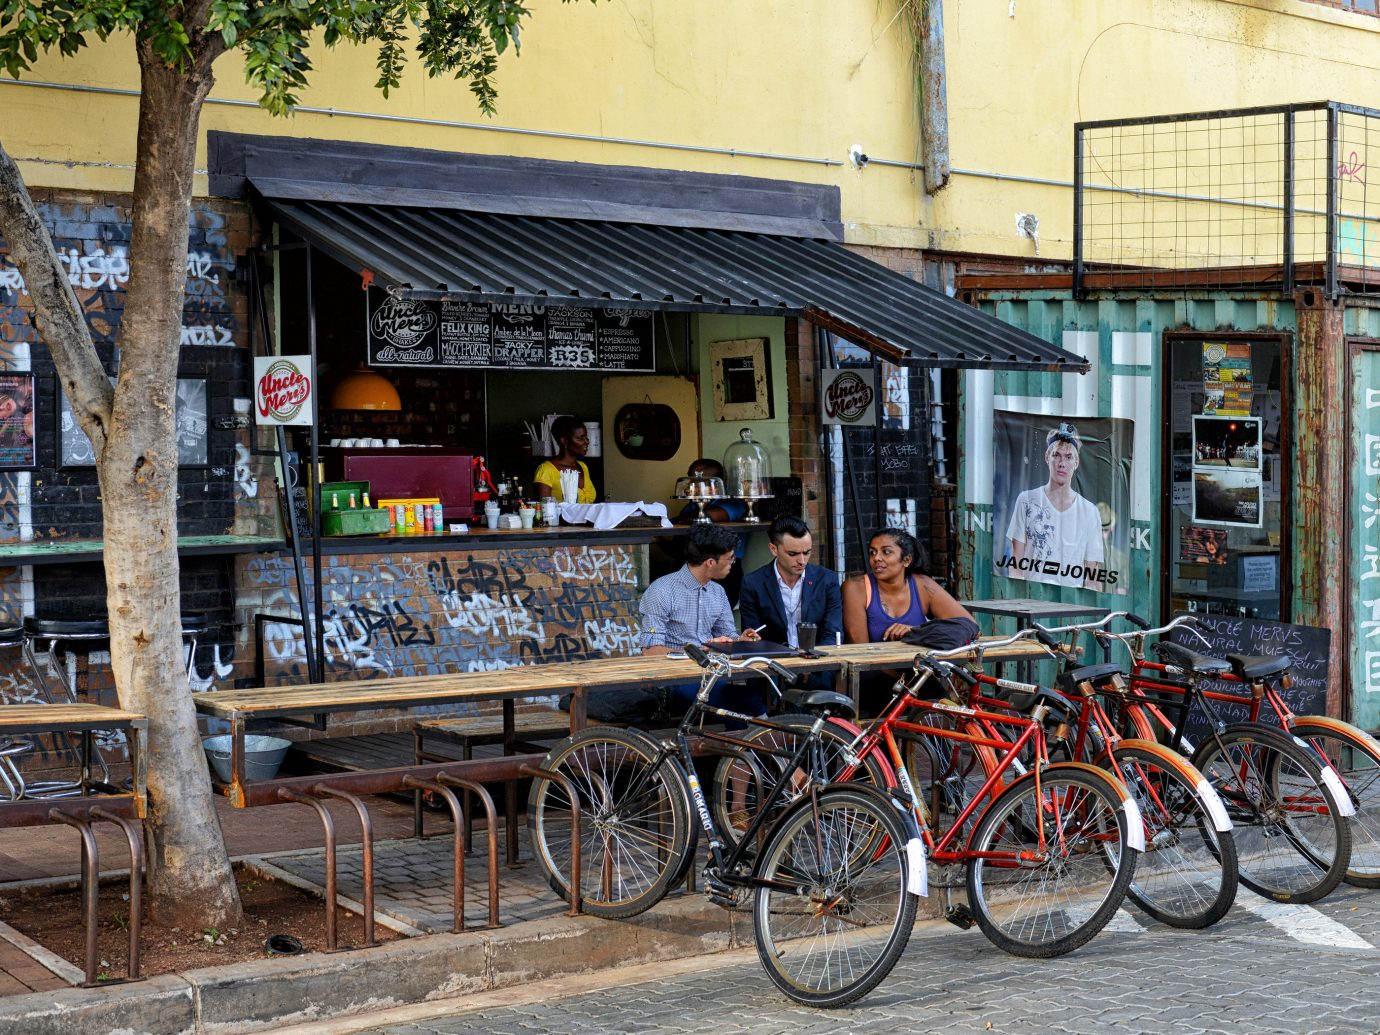 Trip Ideas outdoor building bicycle City road Town urban area neighbourhood human settlement street vehicle tourism parked transport market infrastructure horse-drawn vehicle pulling